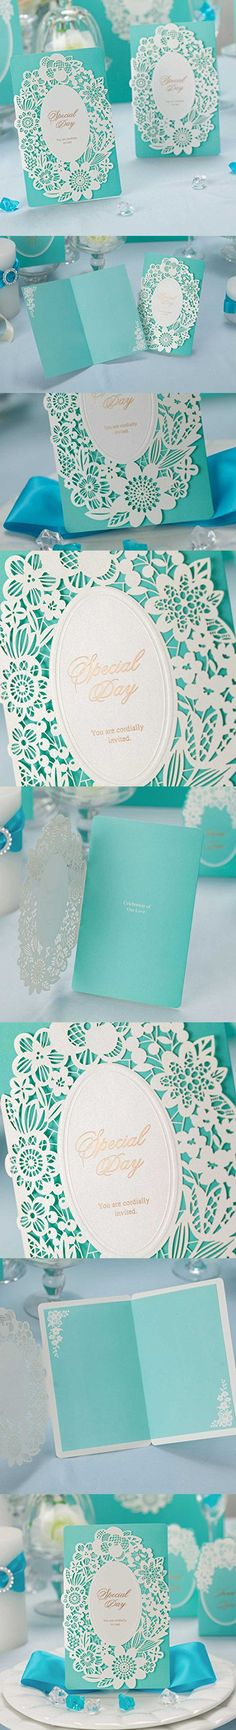 WISHMADE 50 Count Sets Laser Cut Tiffany Blue Wedding Invitations Cards Kits Printbale with Envelopes and White Lace